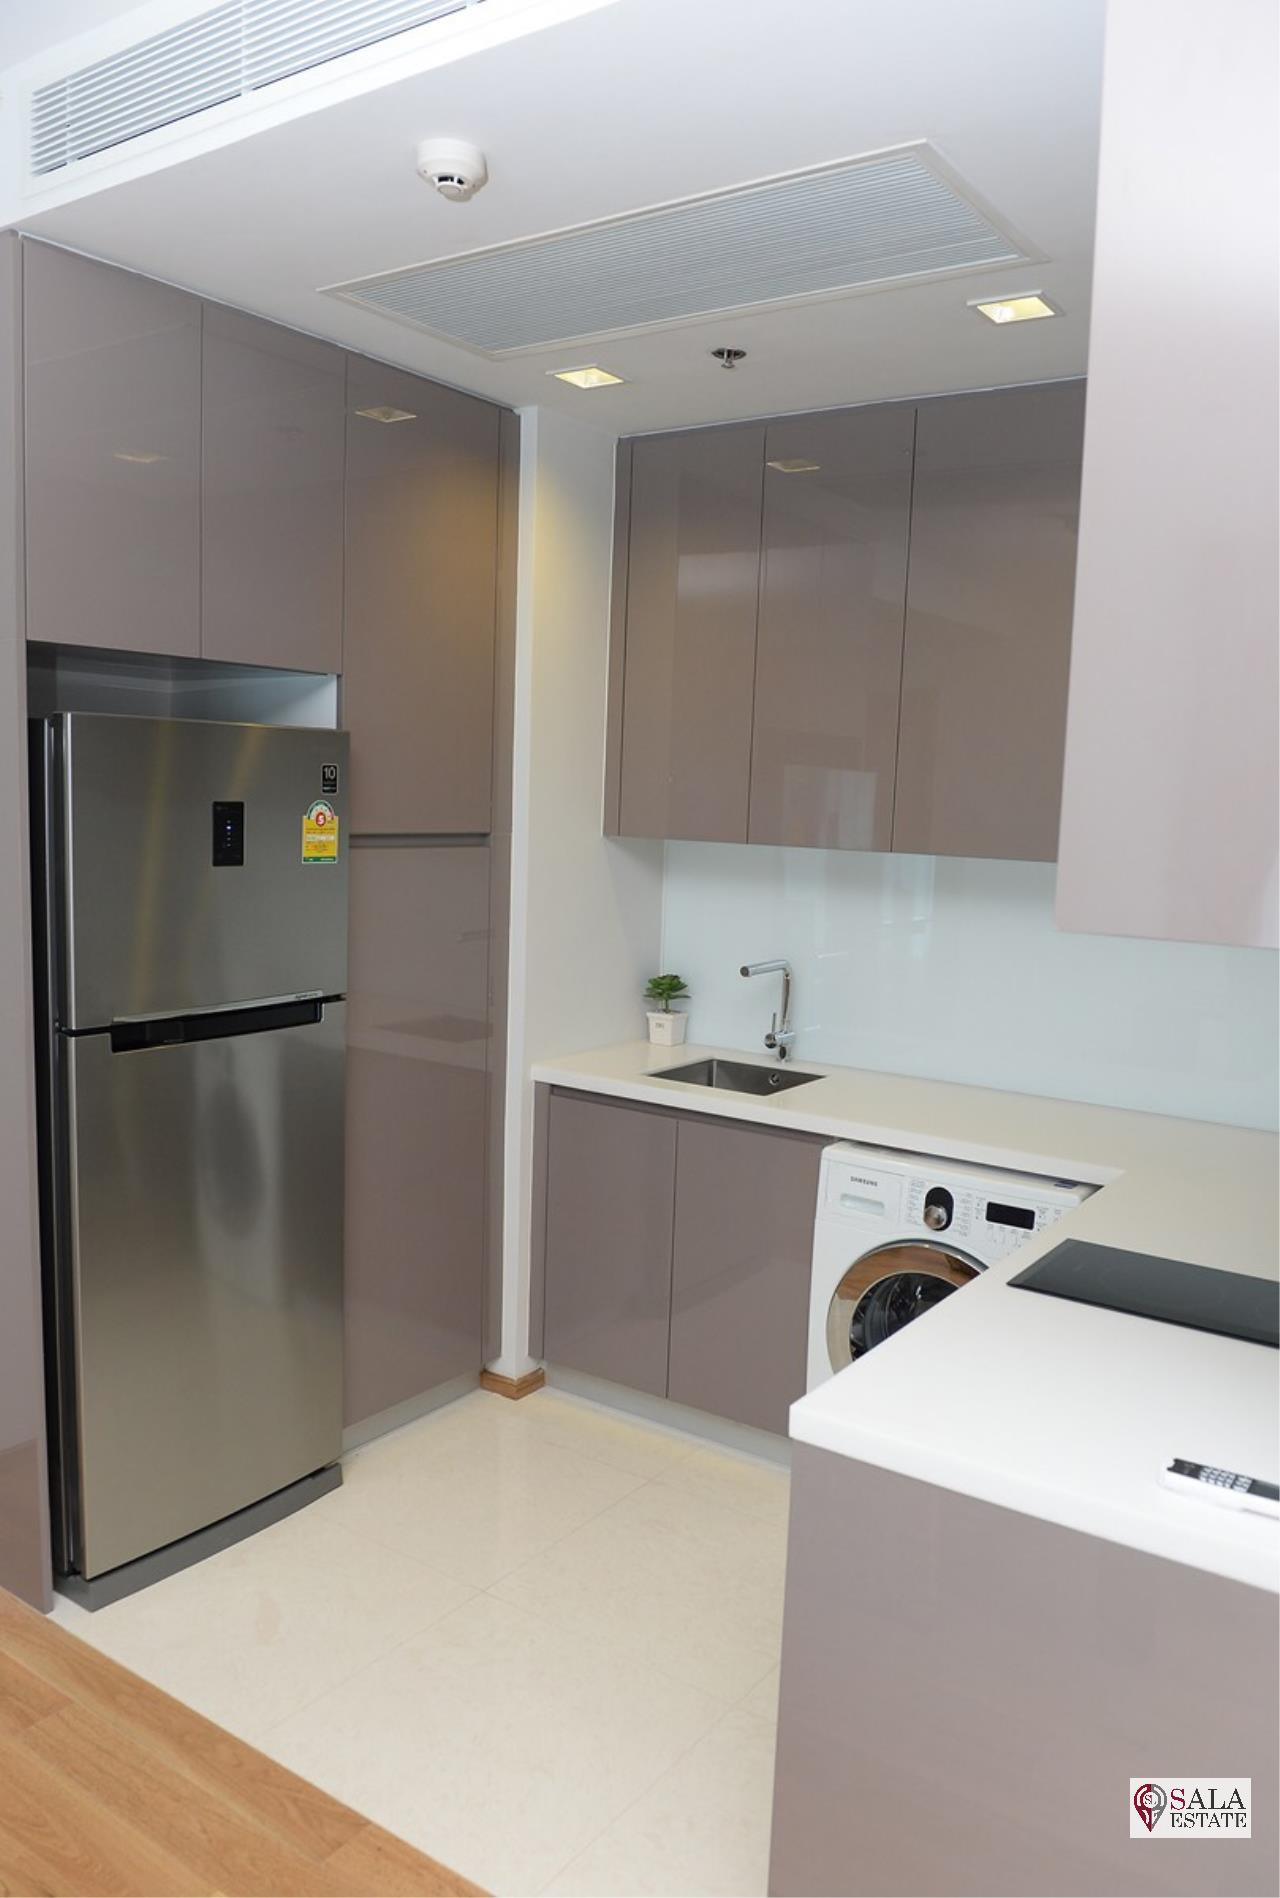 SALA ESTATE Agency's HYDE SUKHUMVIT 13 – BTS NANA,2BEDROOMS 2BATHROOMS, 4FULLY FURNISHED 8